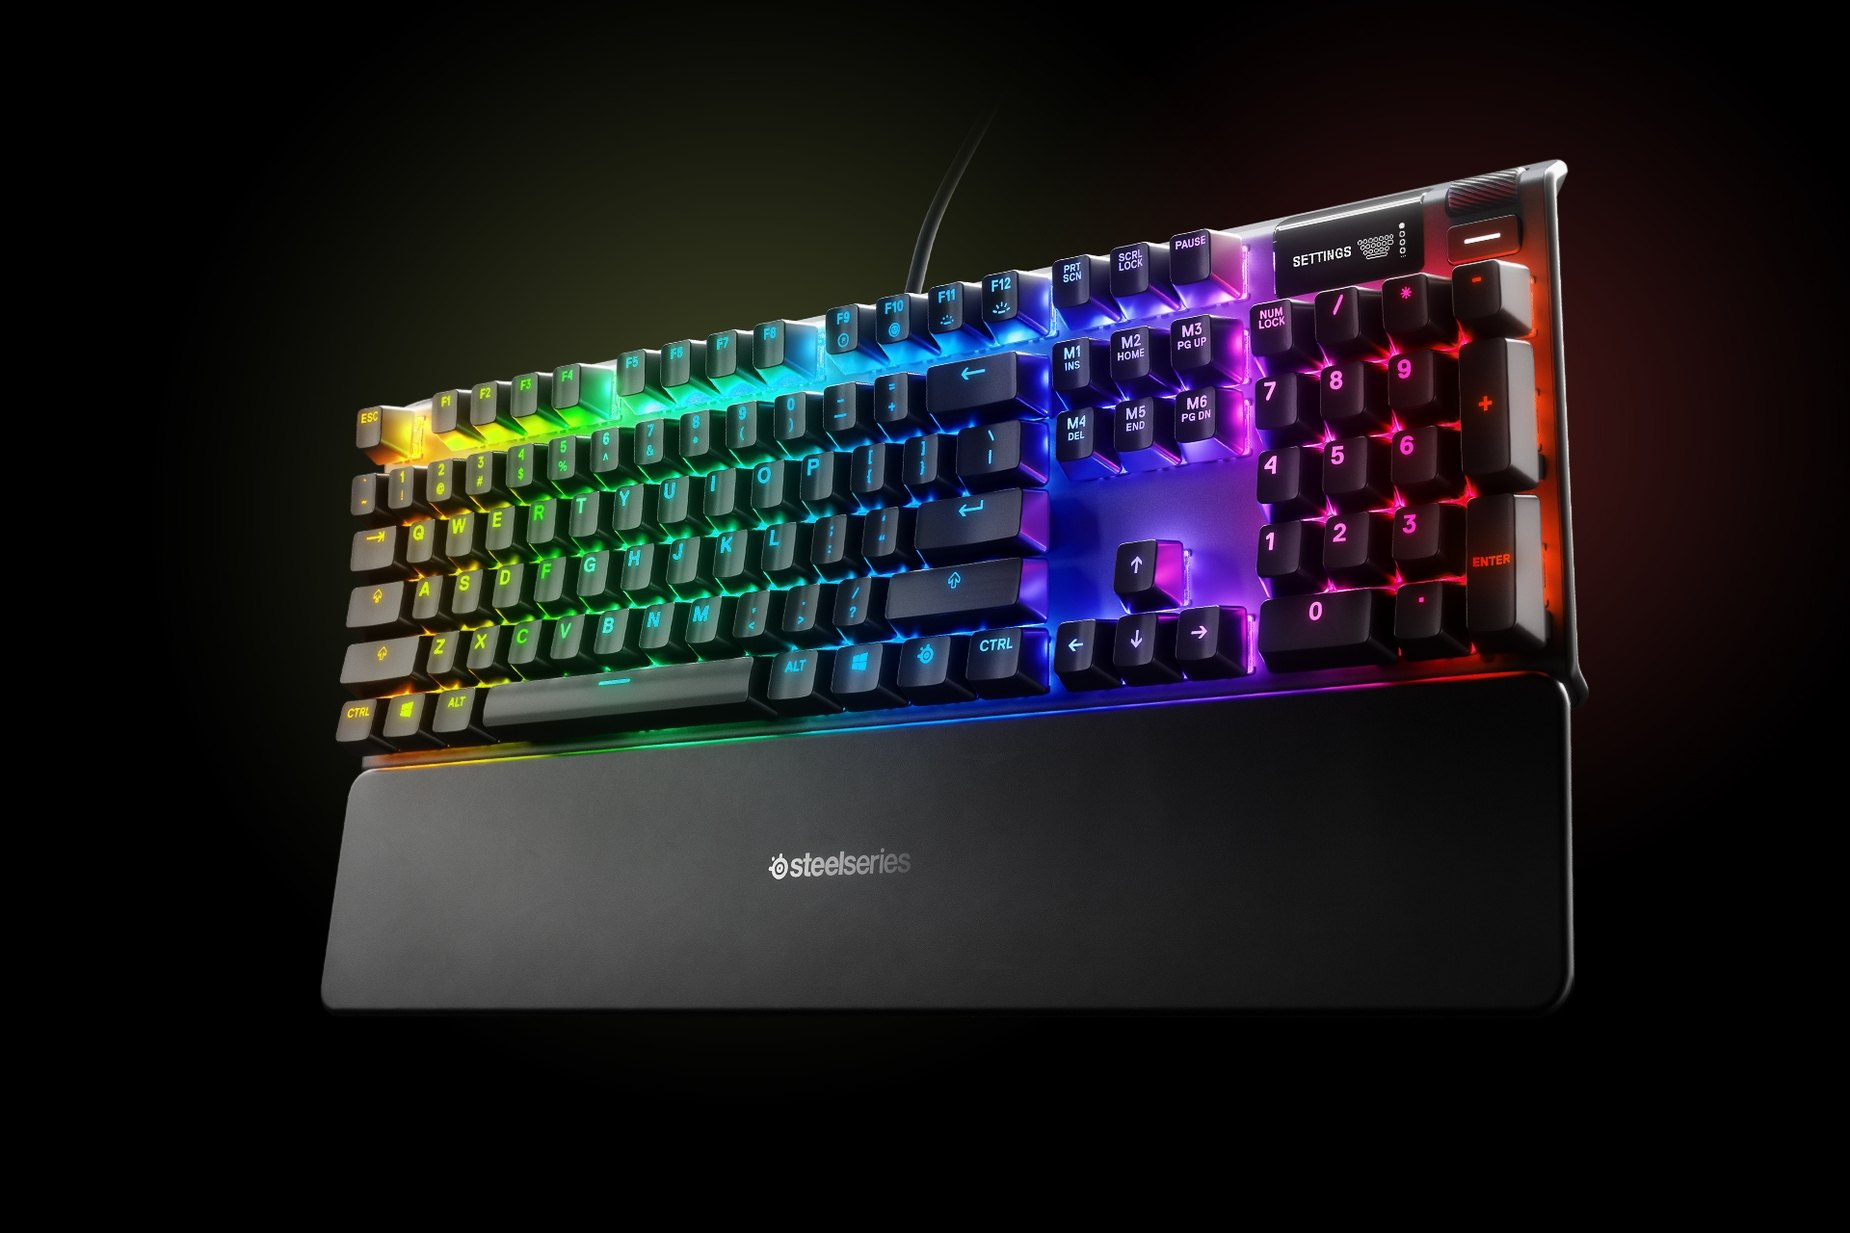 北欧语-Apex 7 (Red Switch) gaming keyboard with the illumination lit up on dark background, also shows the OLED screen and controls used to change settings and adjust audio